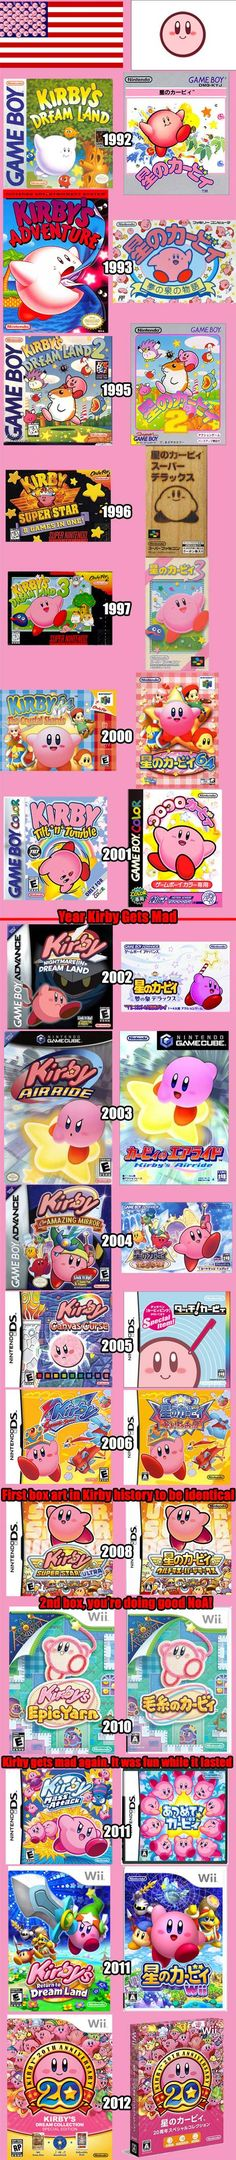 After 9/11 Kirby becomes strangely angry on American boxart